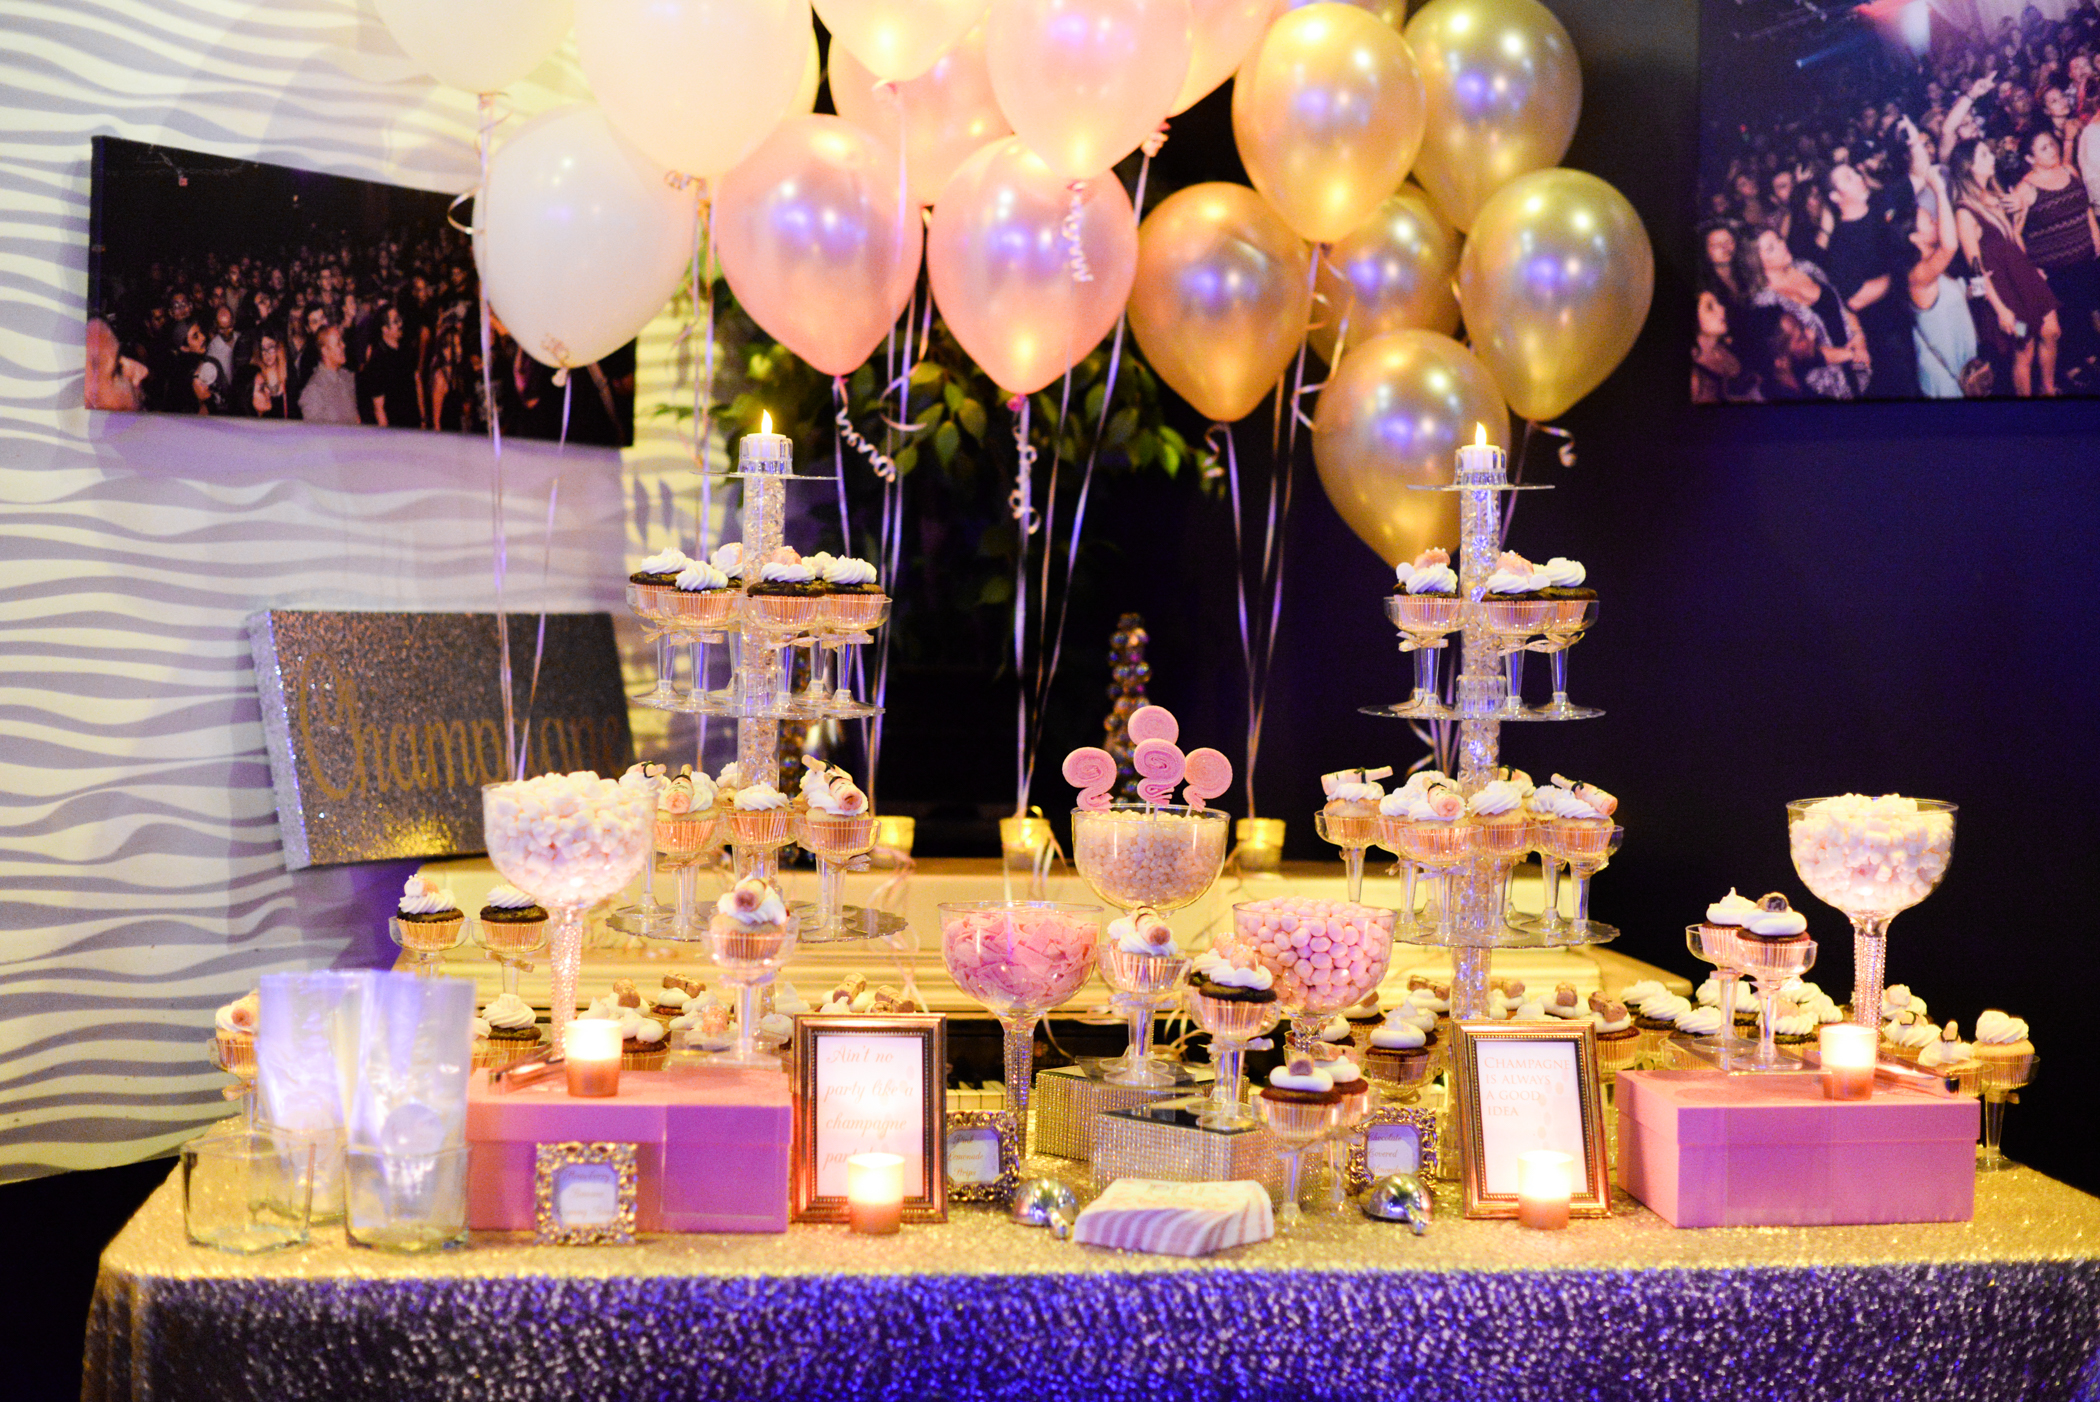 Champagne Party Details Small-7.JPG